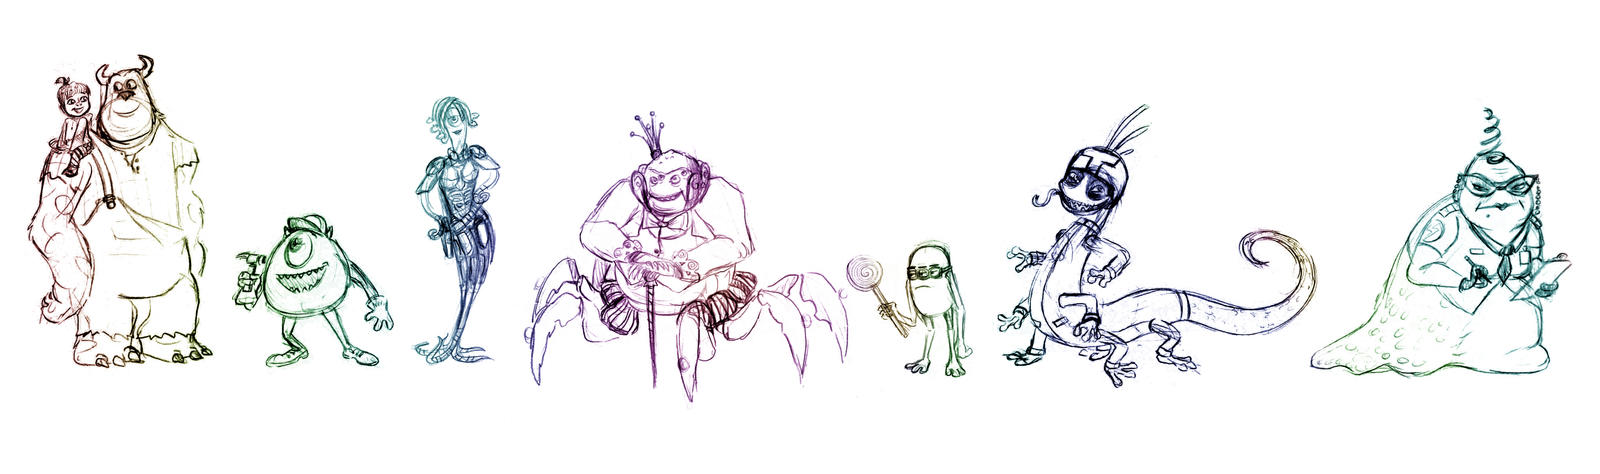 How To Draw Fungus From Monsters University Step 6 Apps